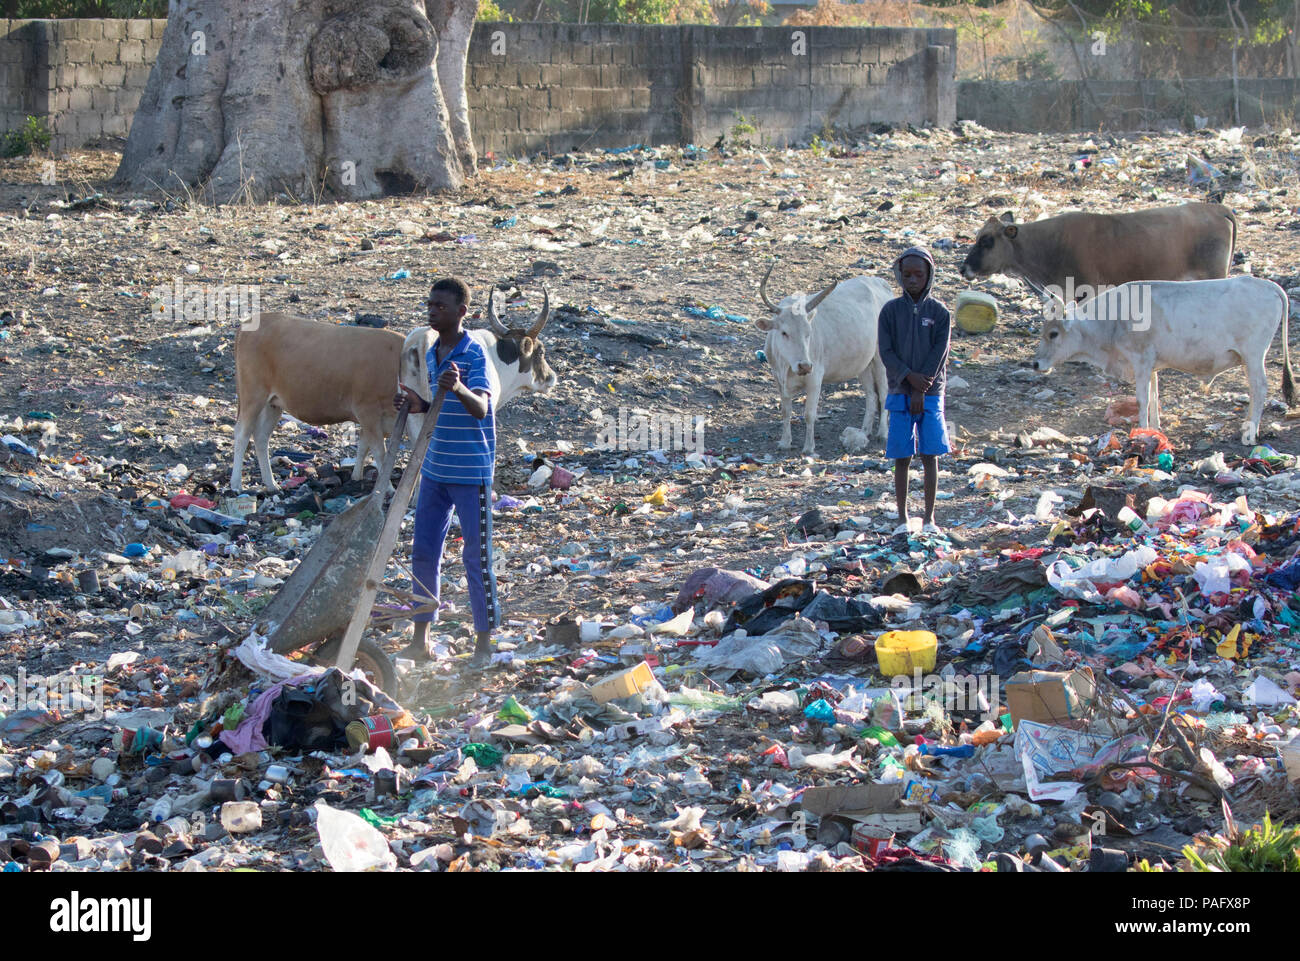 Boys dumping rubbish with cows in background,  village rubbish dump, Brufut, The Gambia - Stock Image